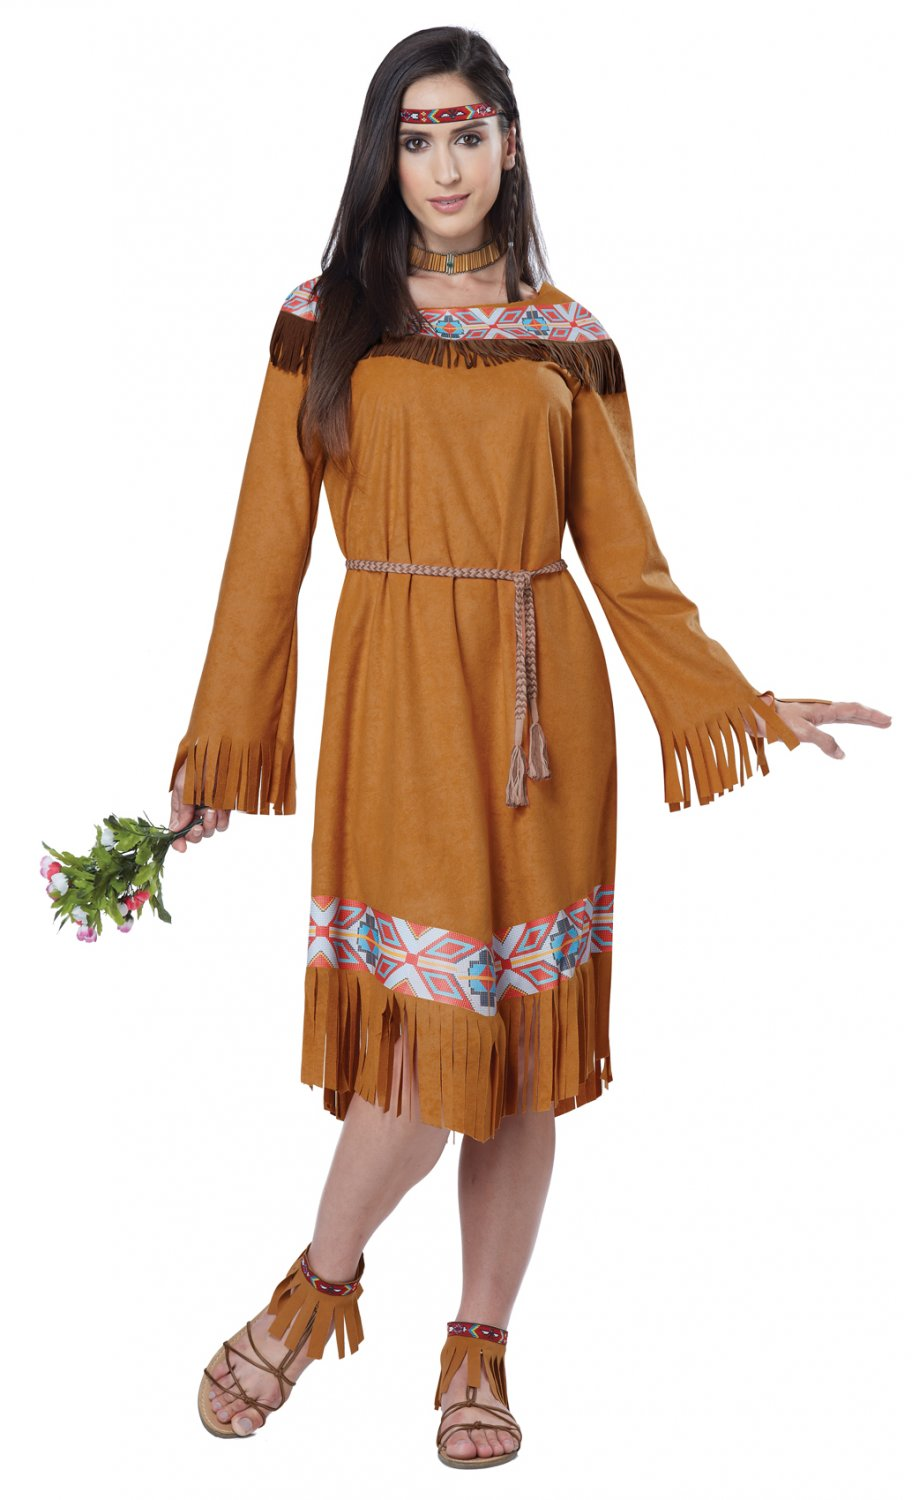 Pocahontas Classic Indian Maiden Adult Costume Size: Medium #01594